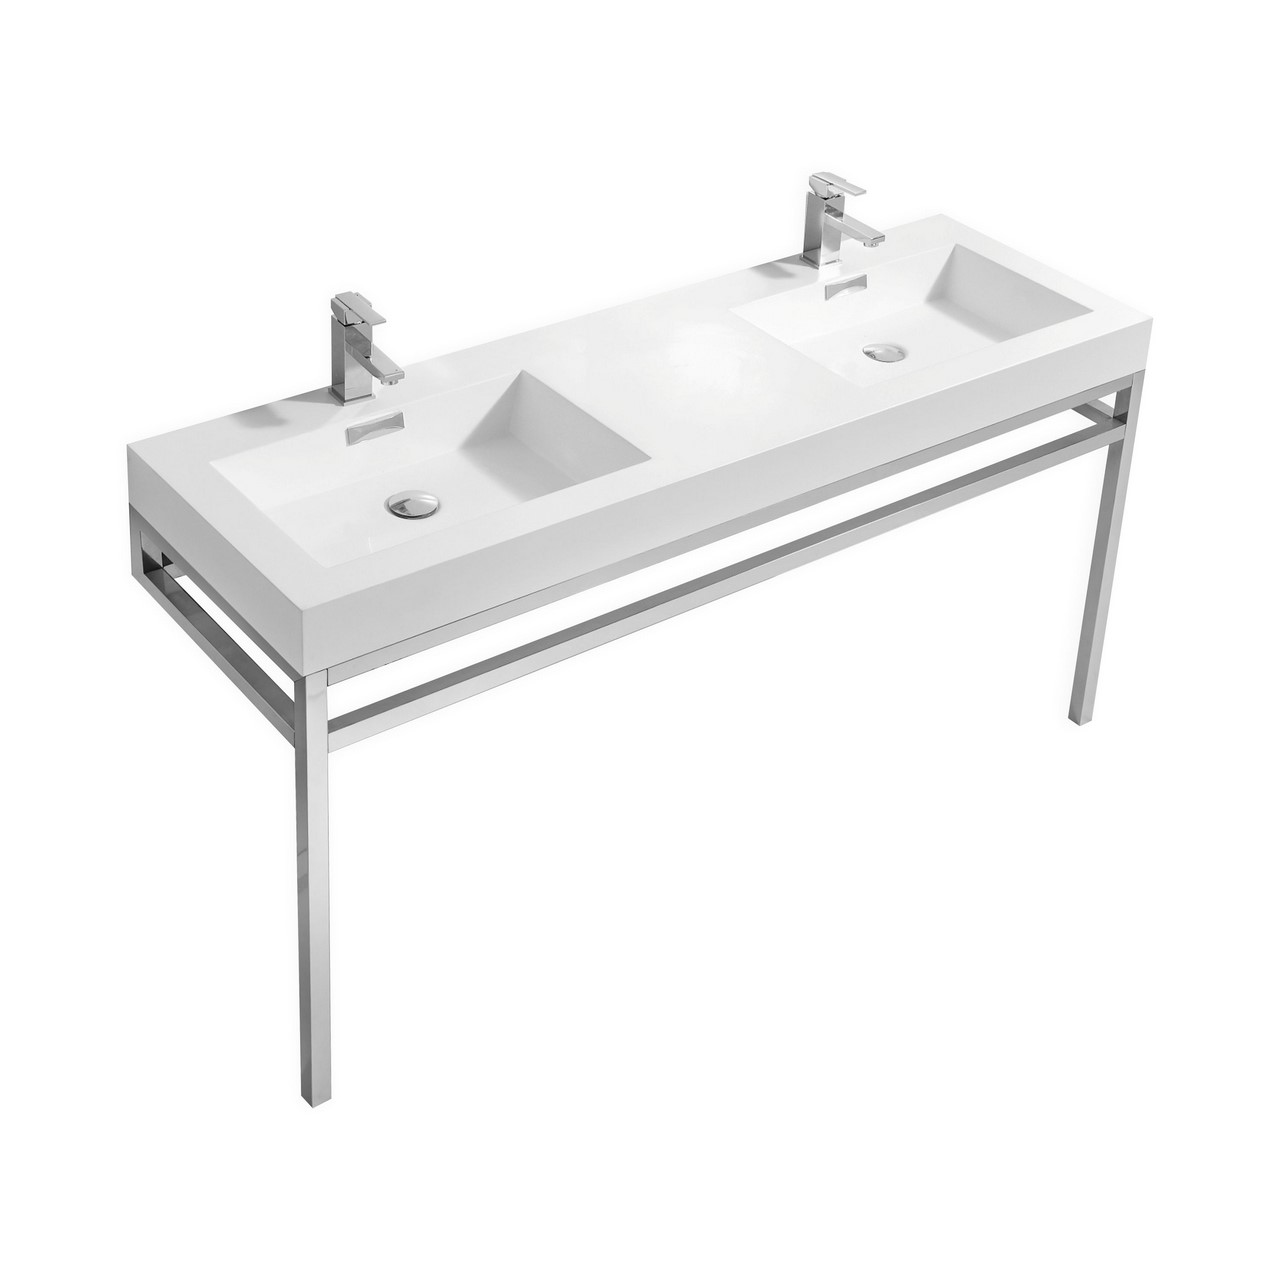 "Modern Lux 60"" Double Sink Stainless Steel Console w/ White Acrylic Sink - Chrome"